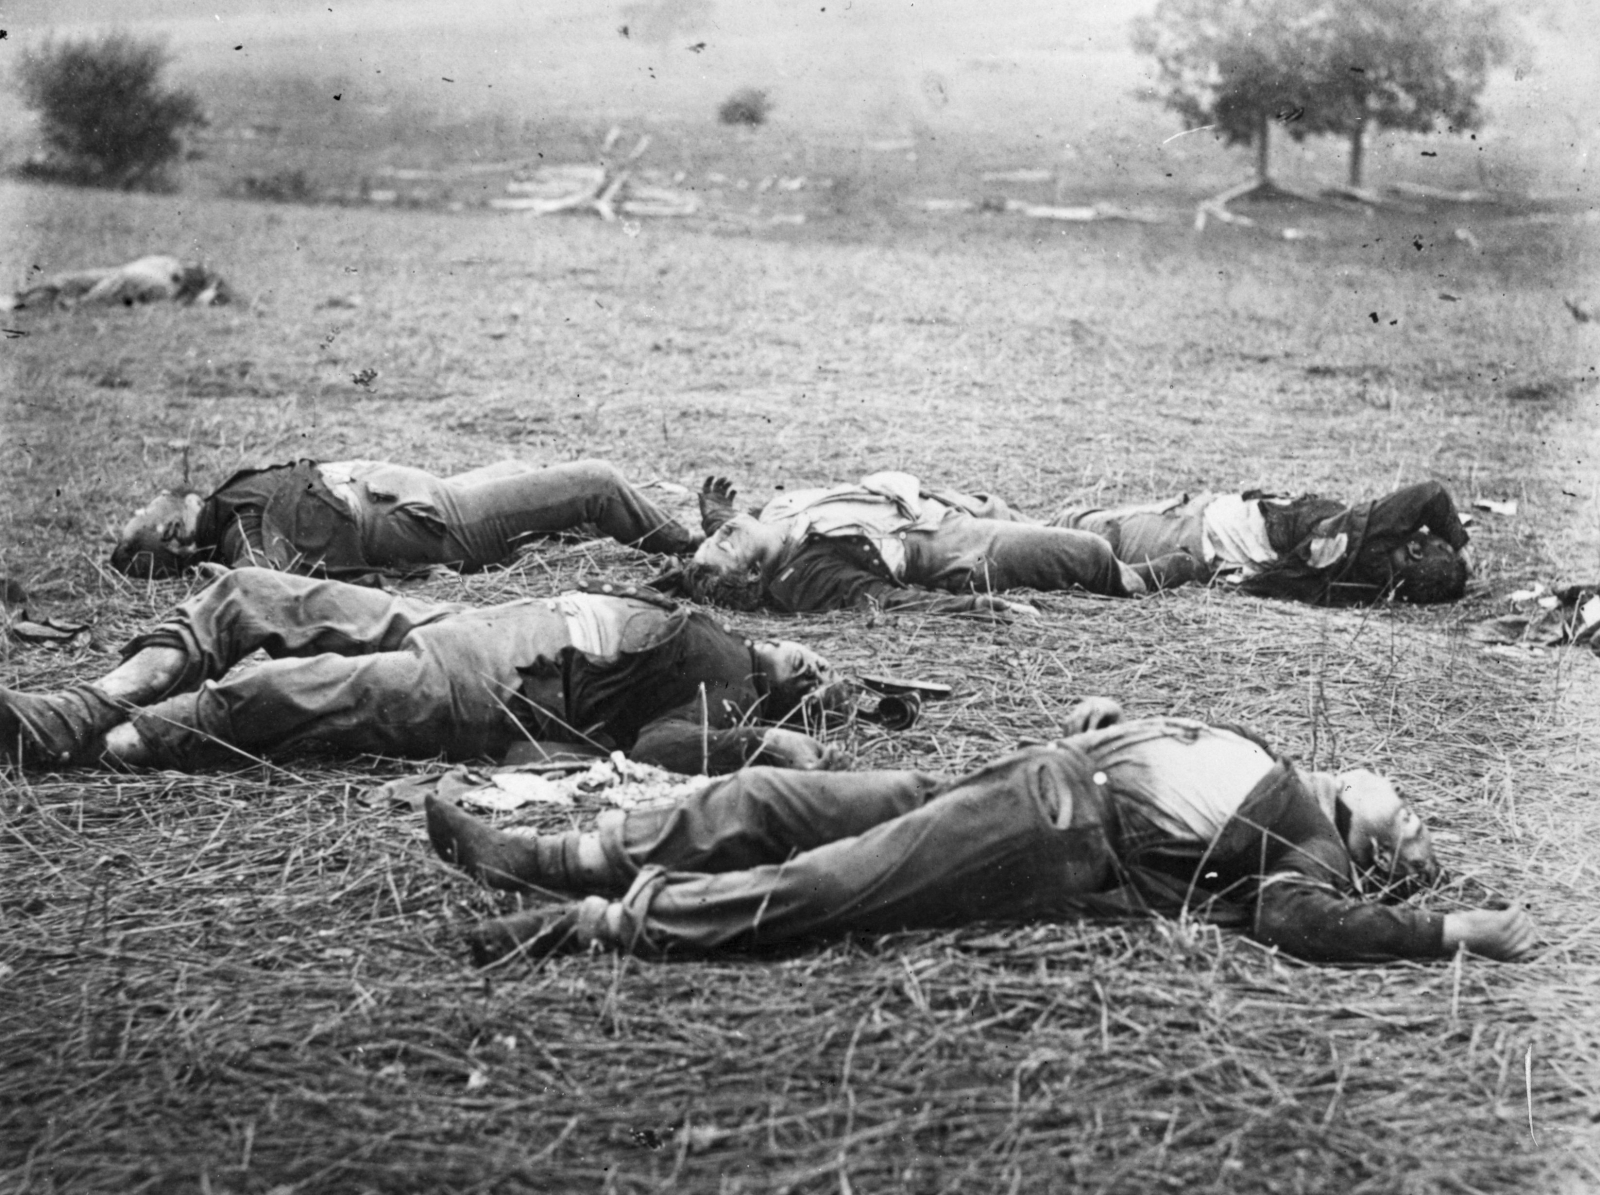 'Sickening' Smell of American Civil War Described by Battle of Gettysburg Nurse